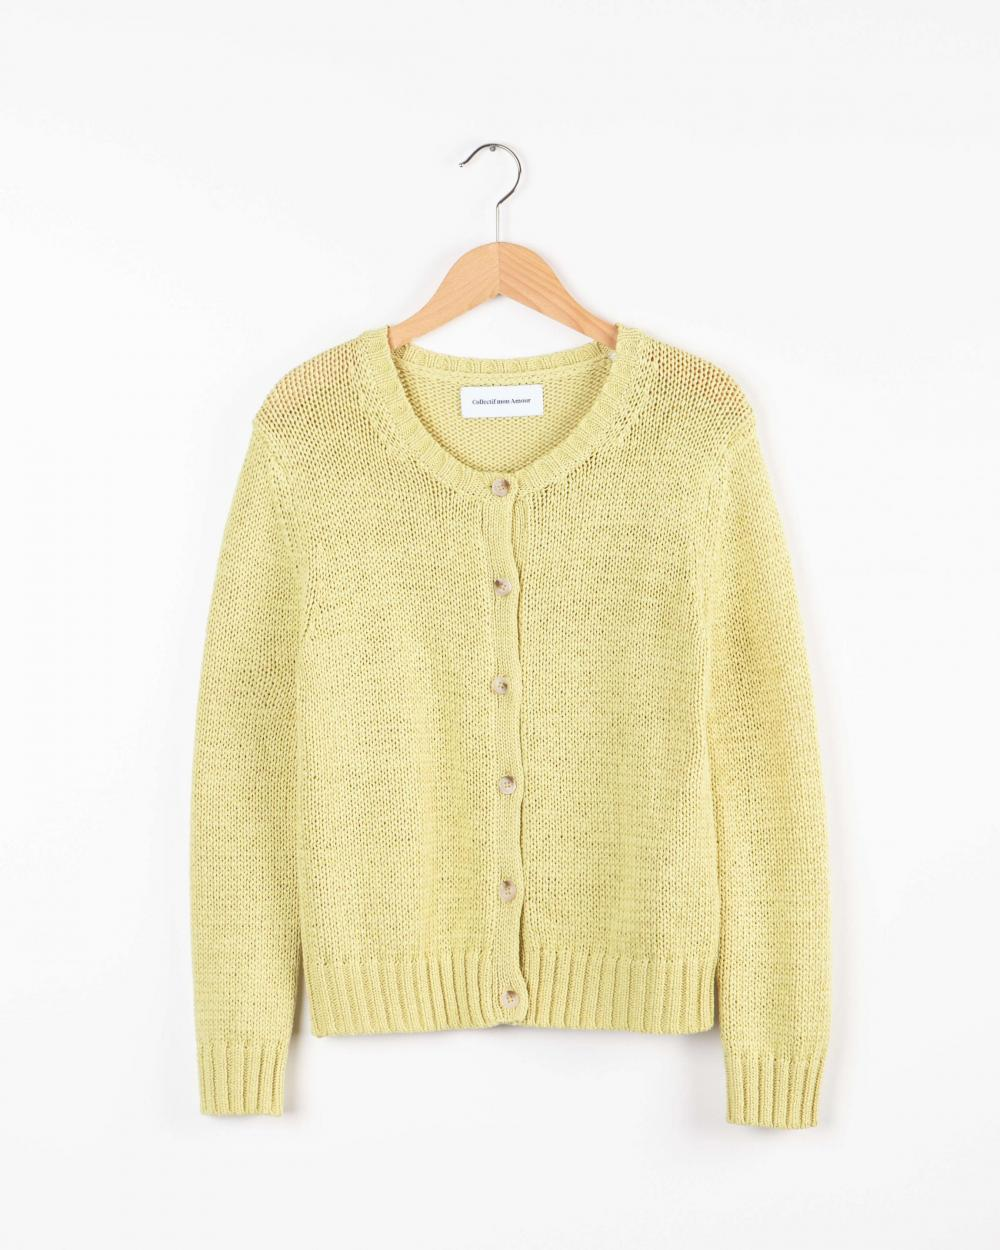 strickjacke-lyric-limone-513-1-f3be540b